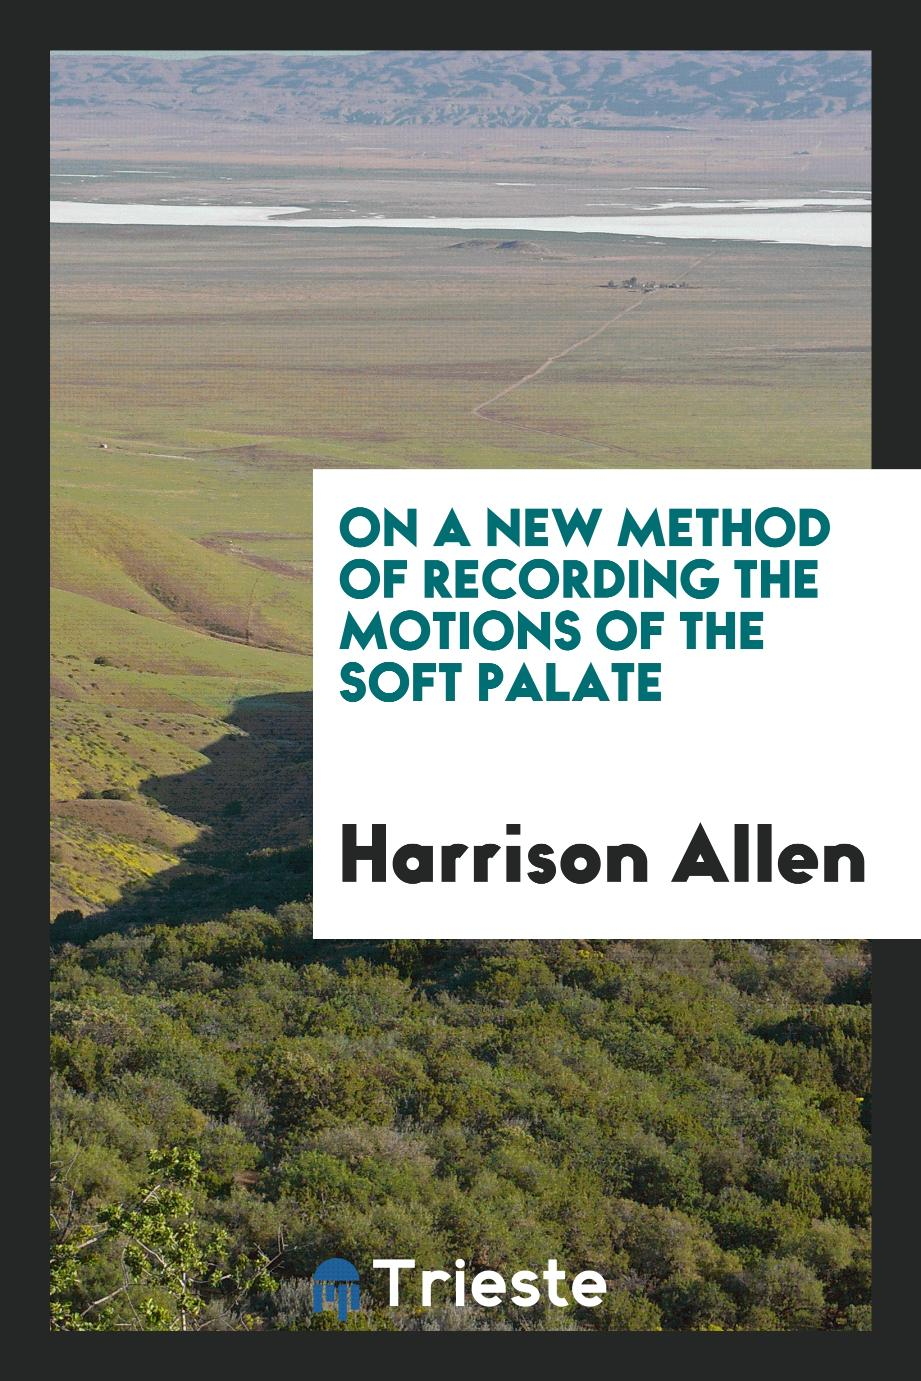 On a new method of recording the motions of the soft palate